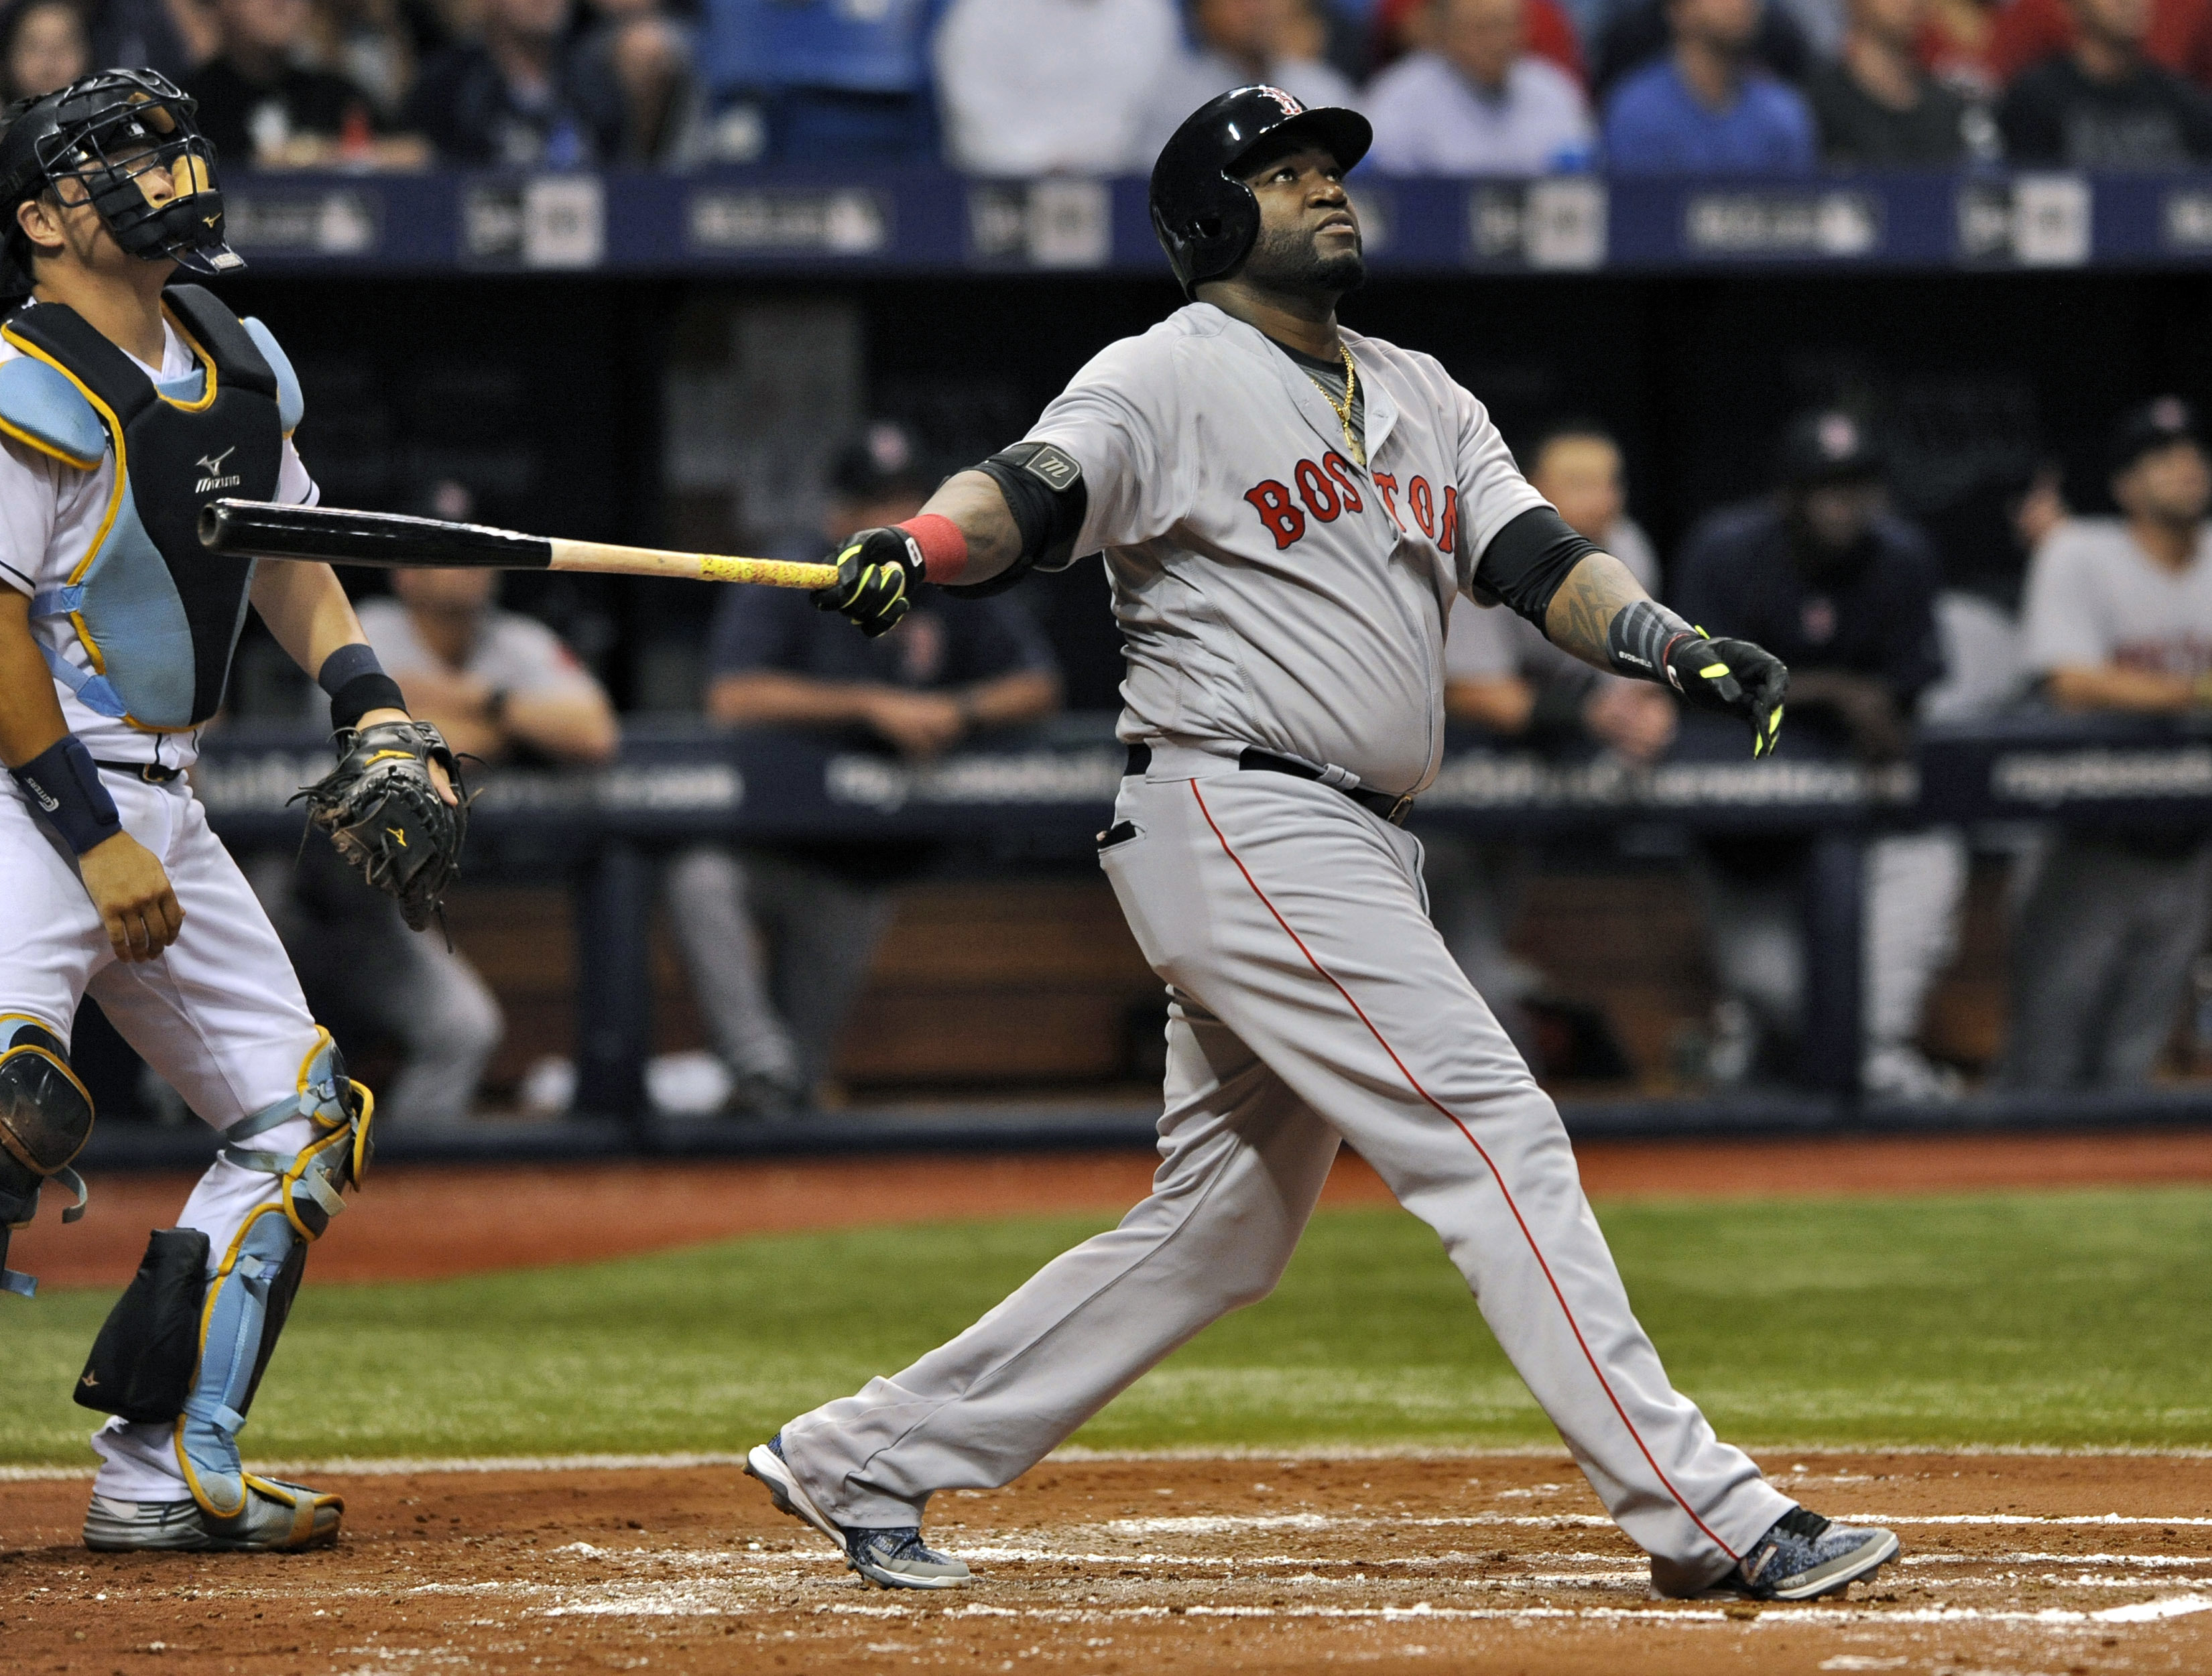 Tampa Bay Rays catcher Hank Conger, left, looks on as Boston Red Sox designated hitter David Ortiz hits a RBI-double to right field during the third inning of a baseball game Tuesday, June 28, 2016, in St. Petersburg, Fla. (AP Photo/Steve Nesius)